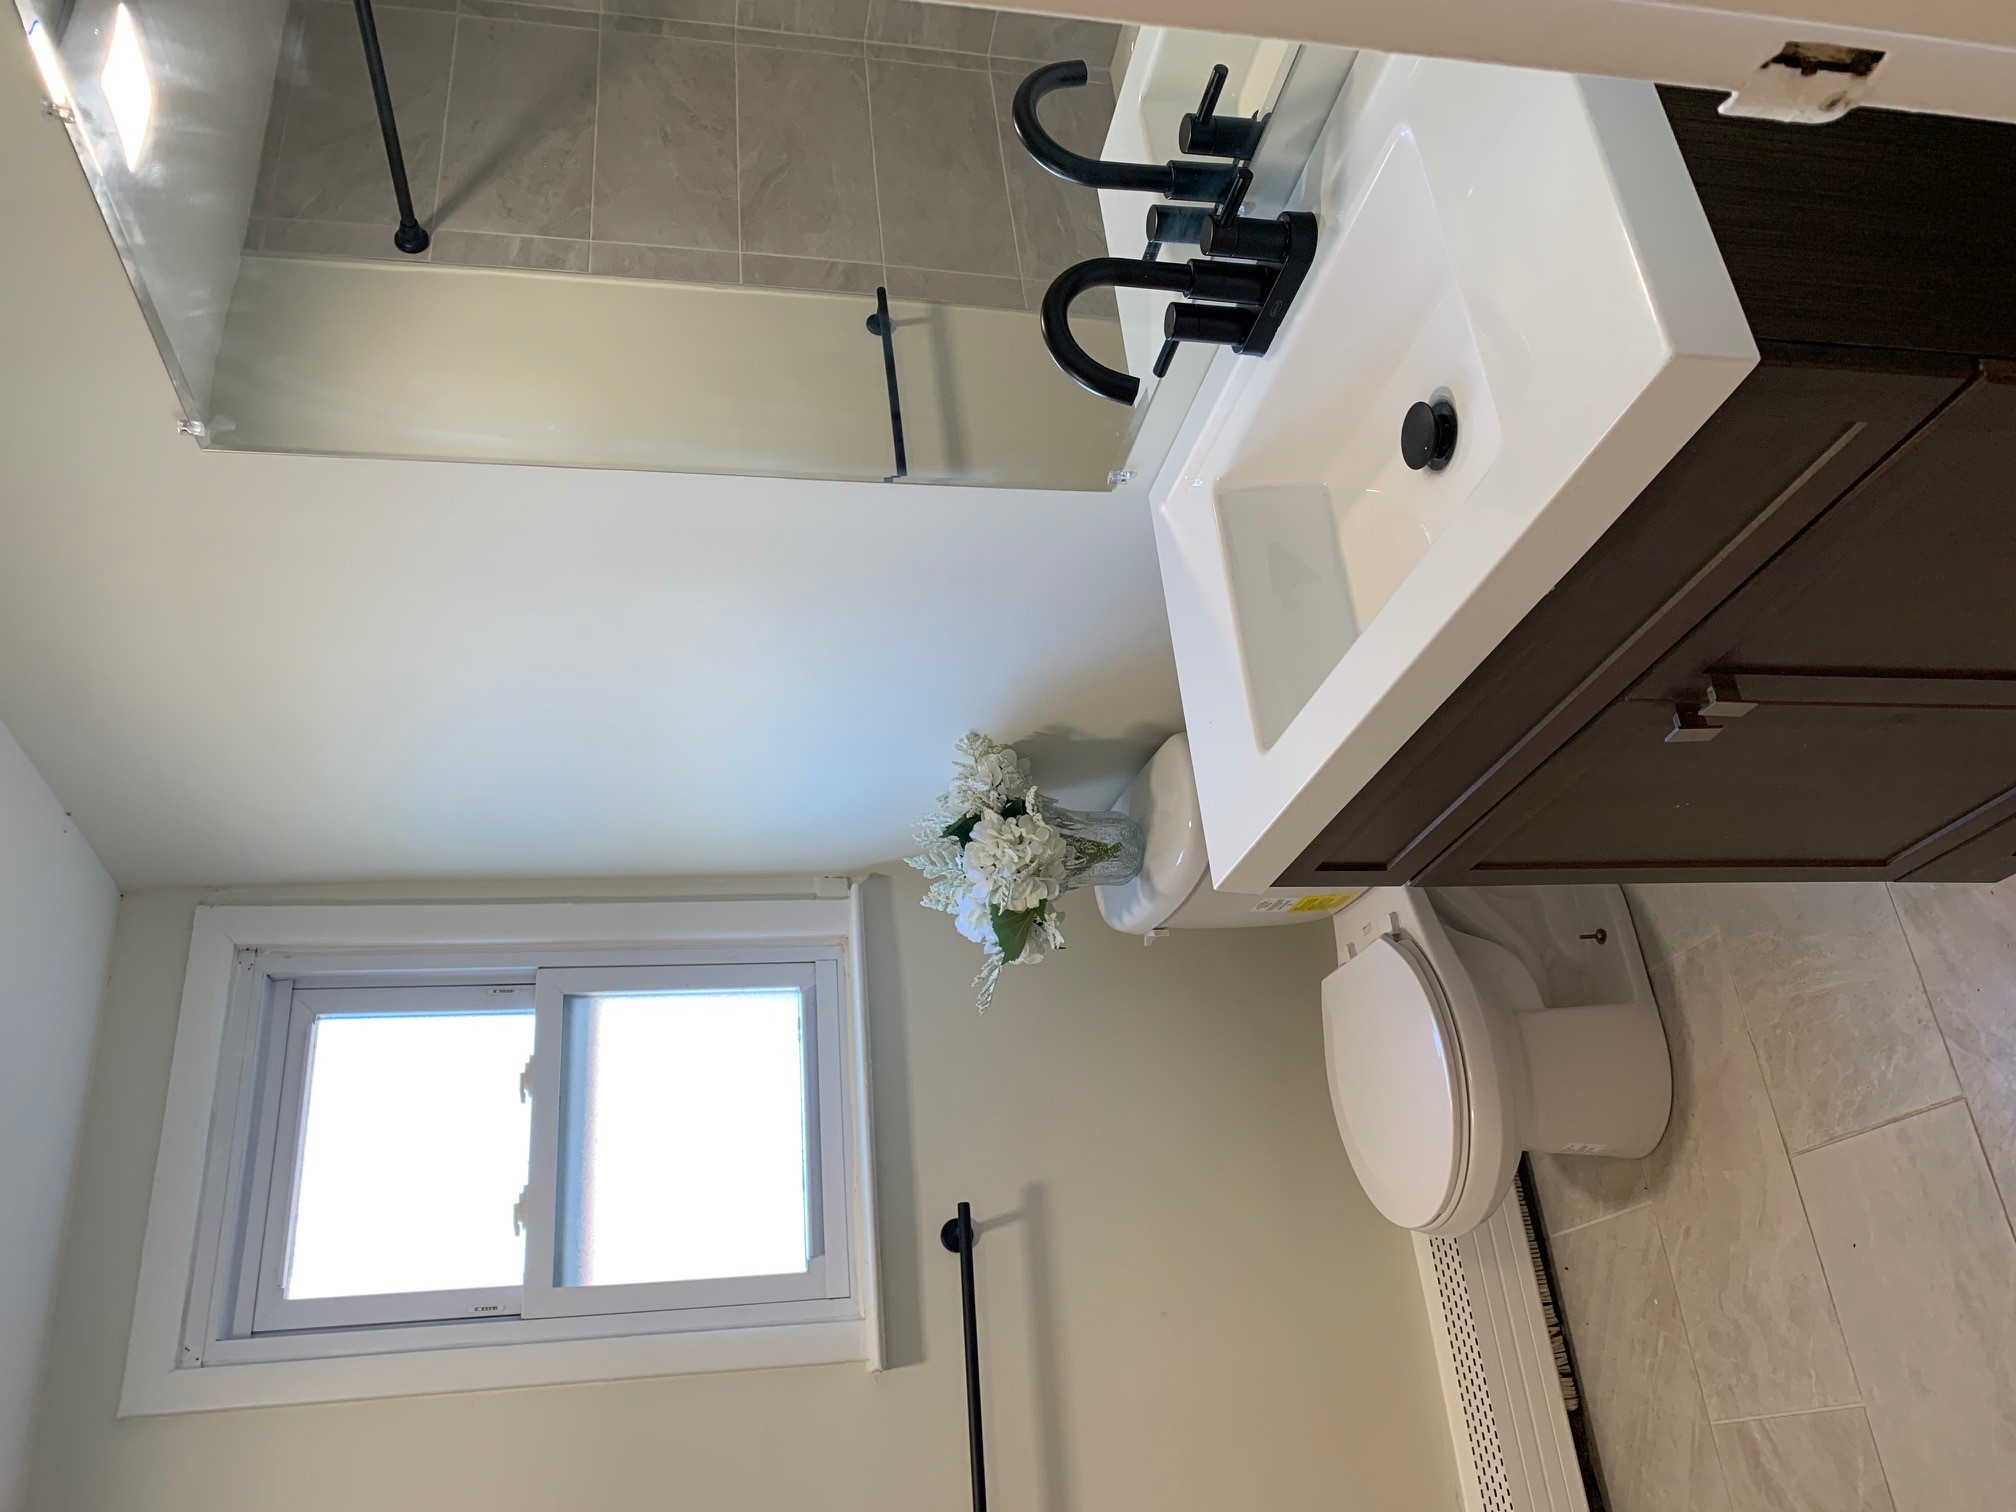 Bathroom at Livingston Gardens Apartments in North Brunswick Township, New Jersey